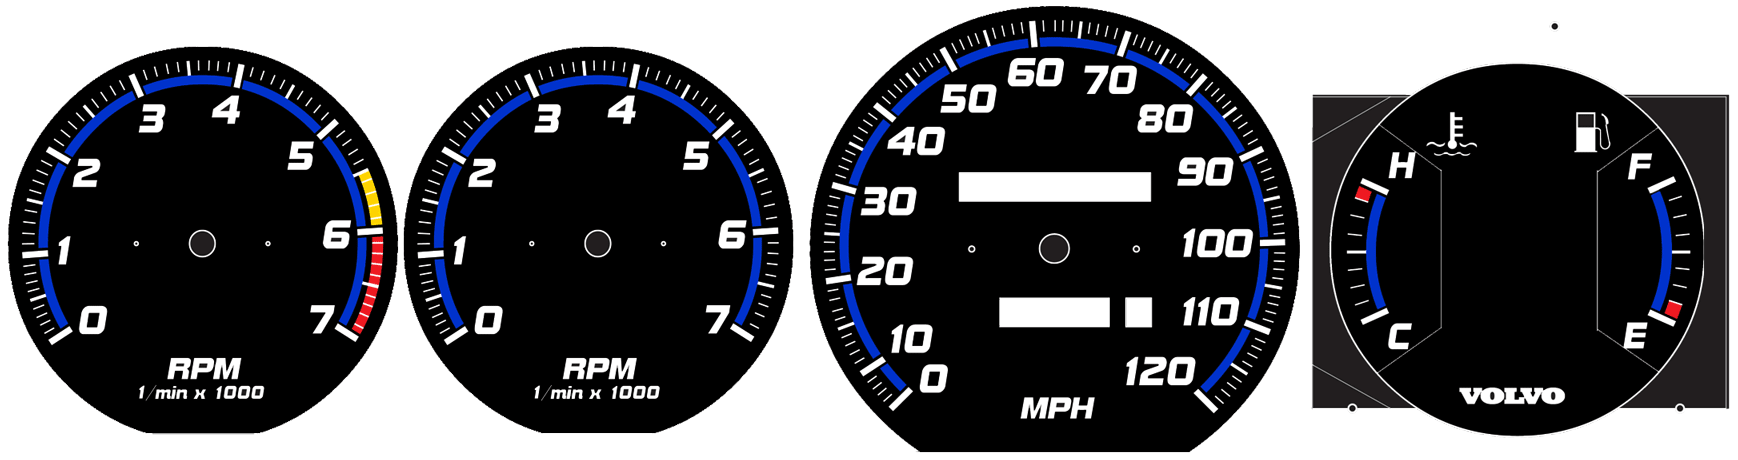 Daves Volvo 240 White Face Gauges Vdo Tachometer Wiring Diagram 1 Min Also Available With Tach Redline Without Hcfe Other Color Rings R Sport Or Logos